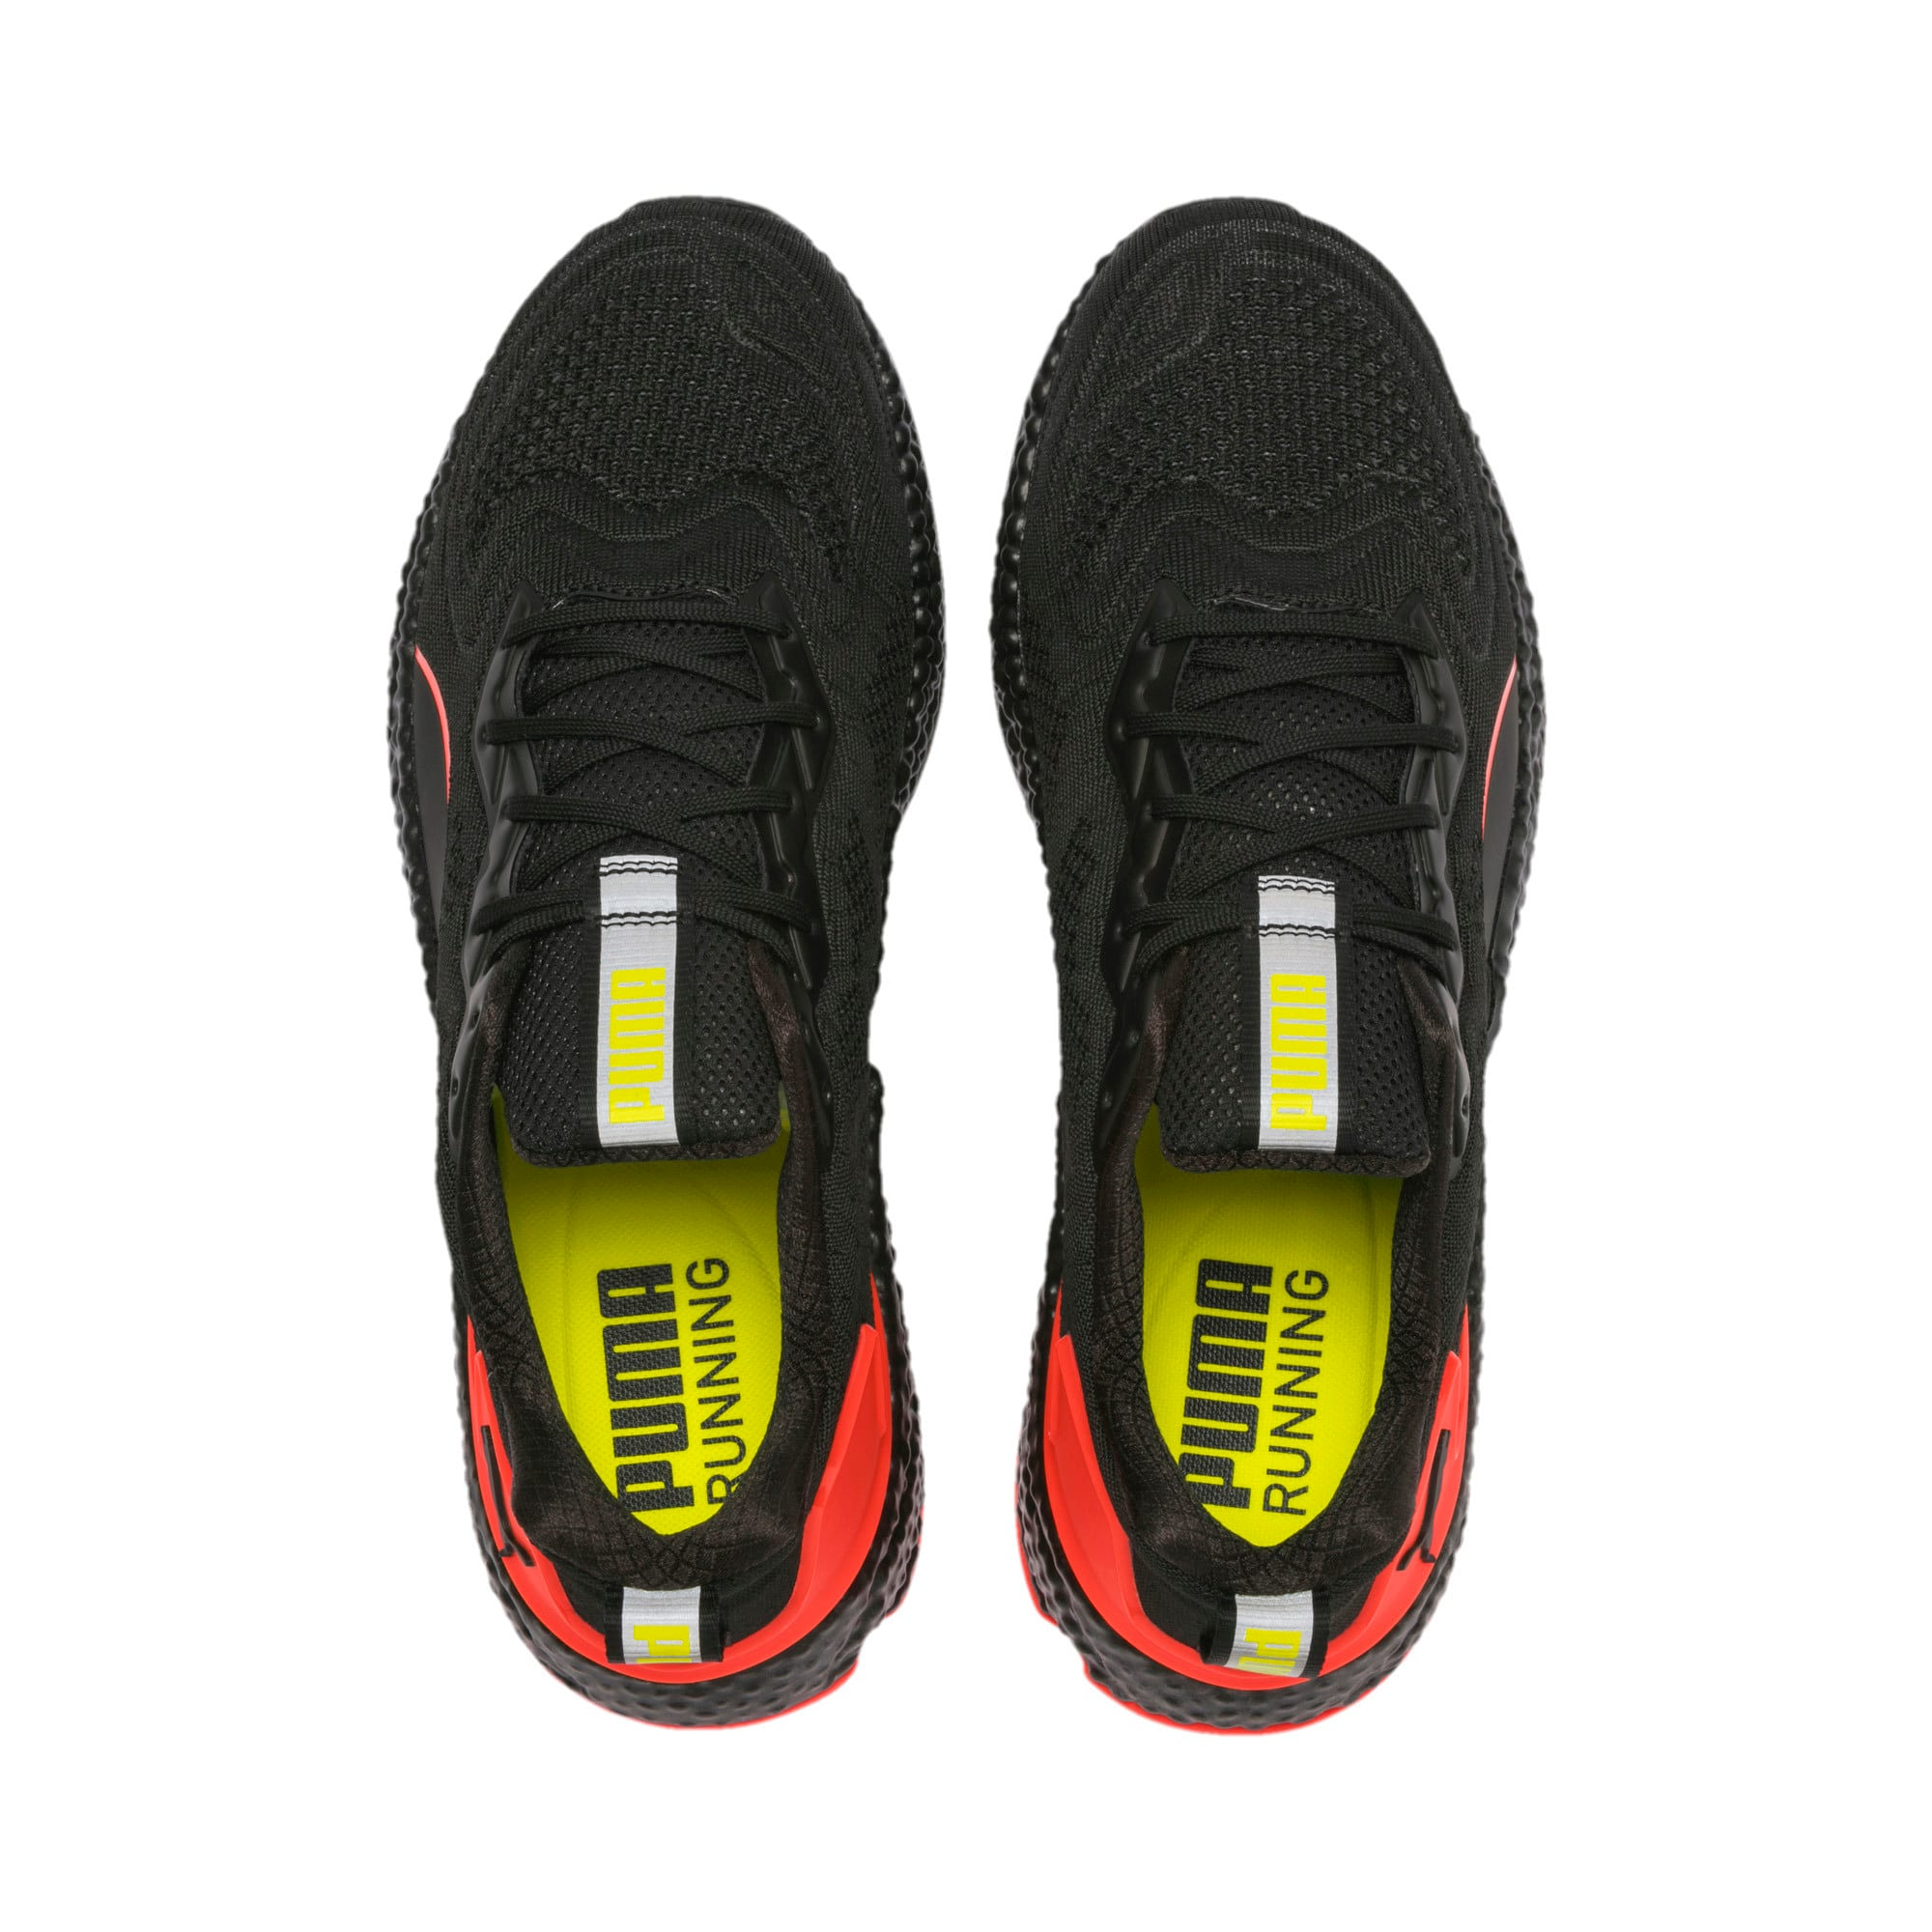 Thumbnail 7 of Chaussure de course HYBID SPEED Orbiter pour homme, Black-Nrgy Red-Yellow, medium